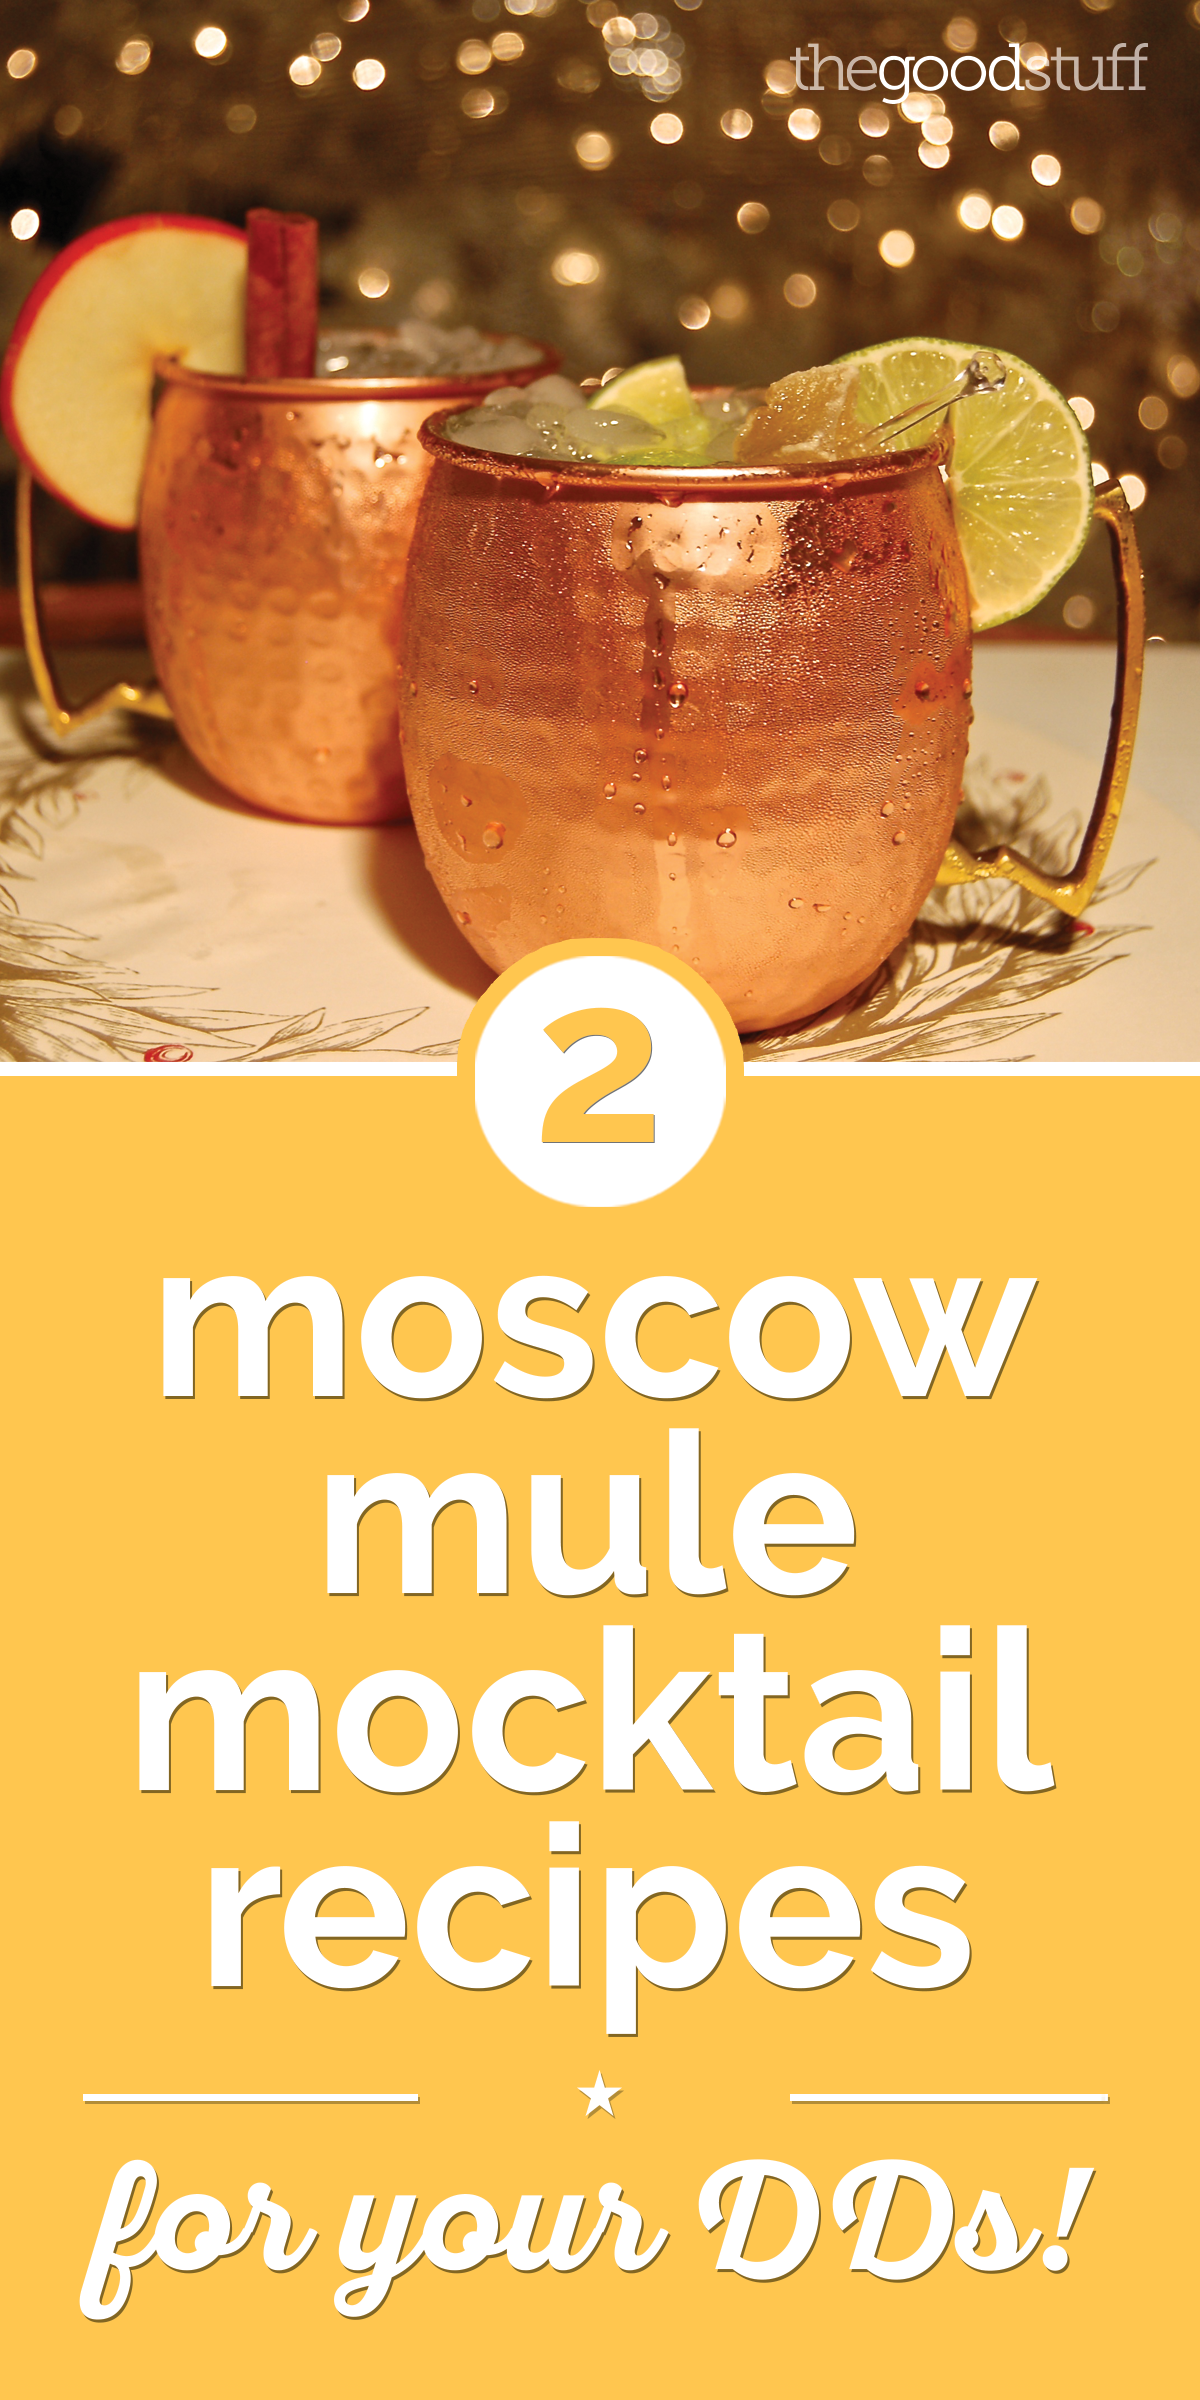 2 Moscow Mule Mocktail Recipes for Your DDs! | thegoodstuff